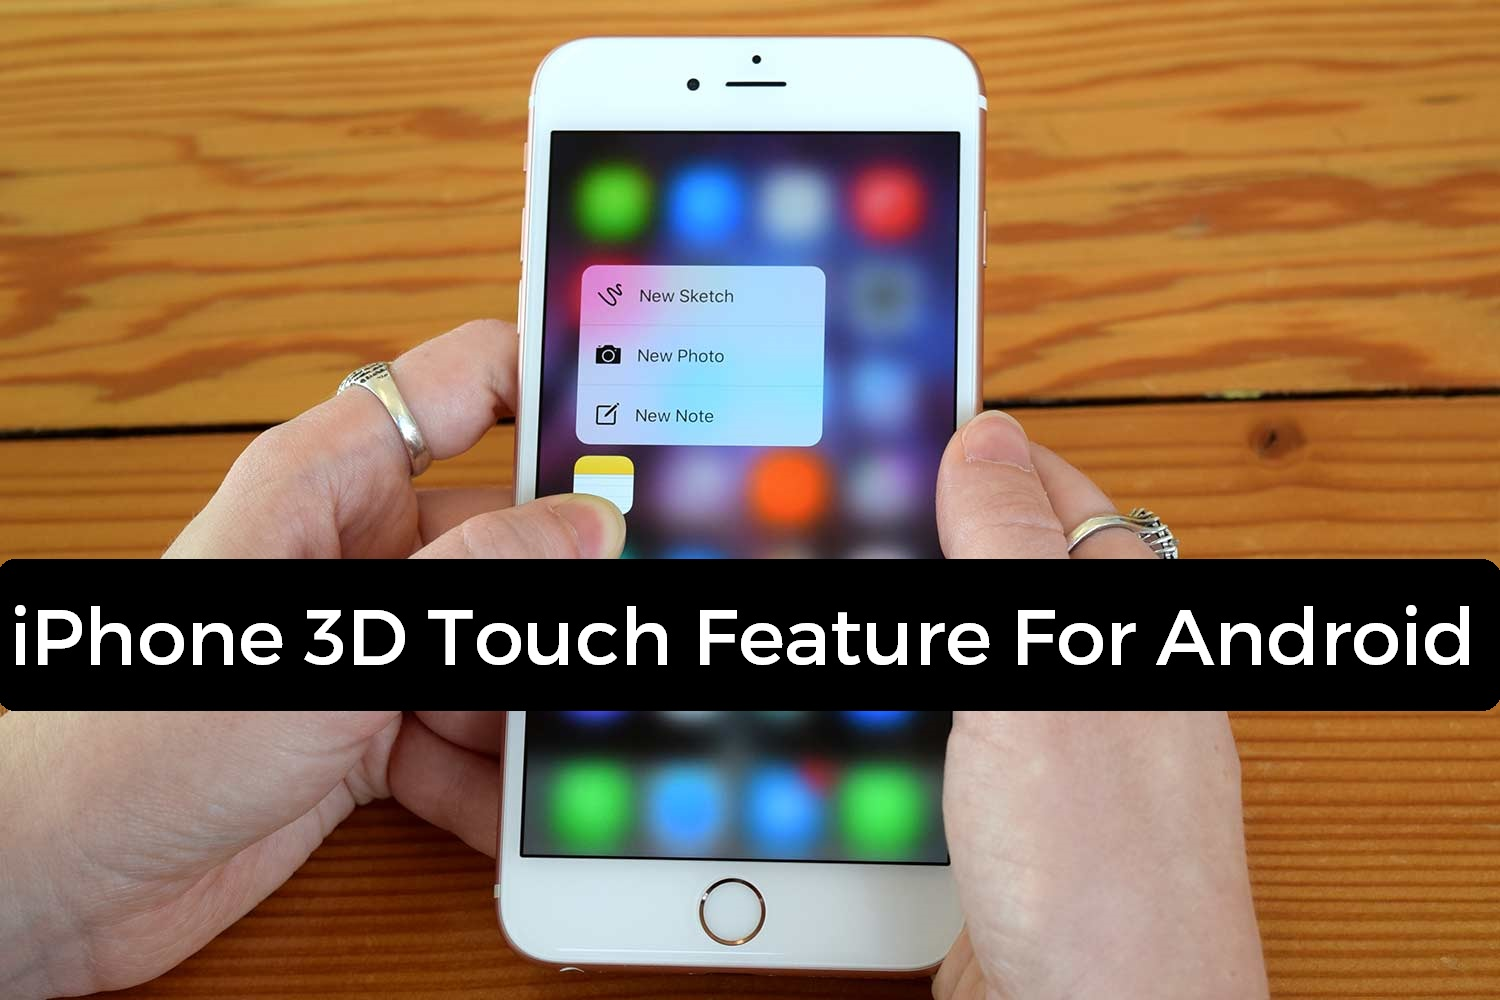 3D Touch Feature In Android